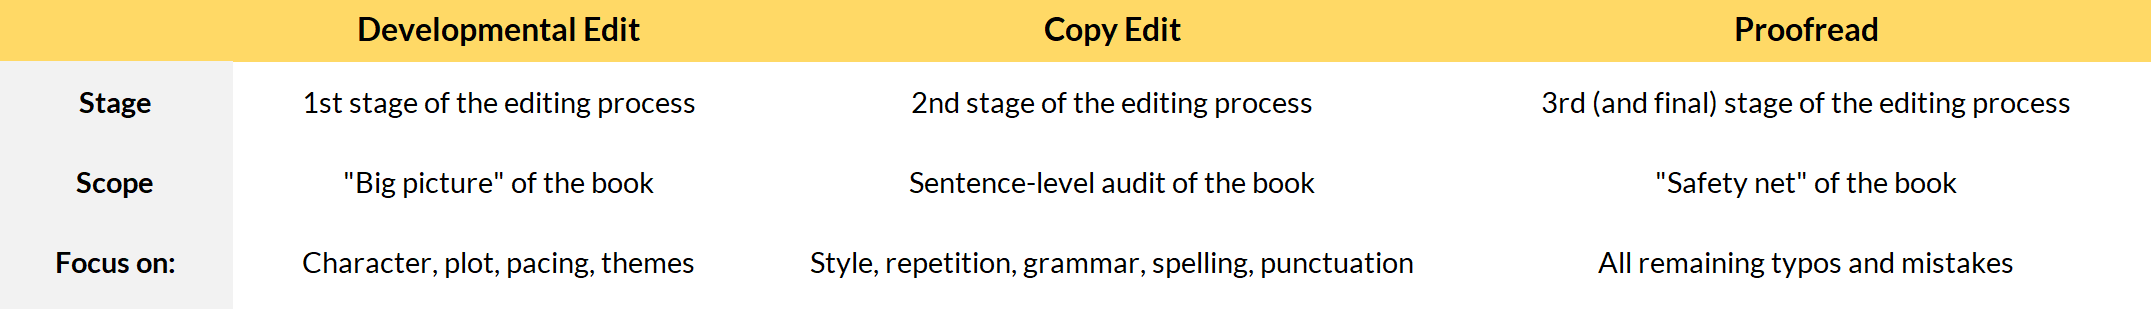 Table Developmental Edit vs Copy Edit vs Proofread